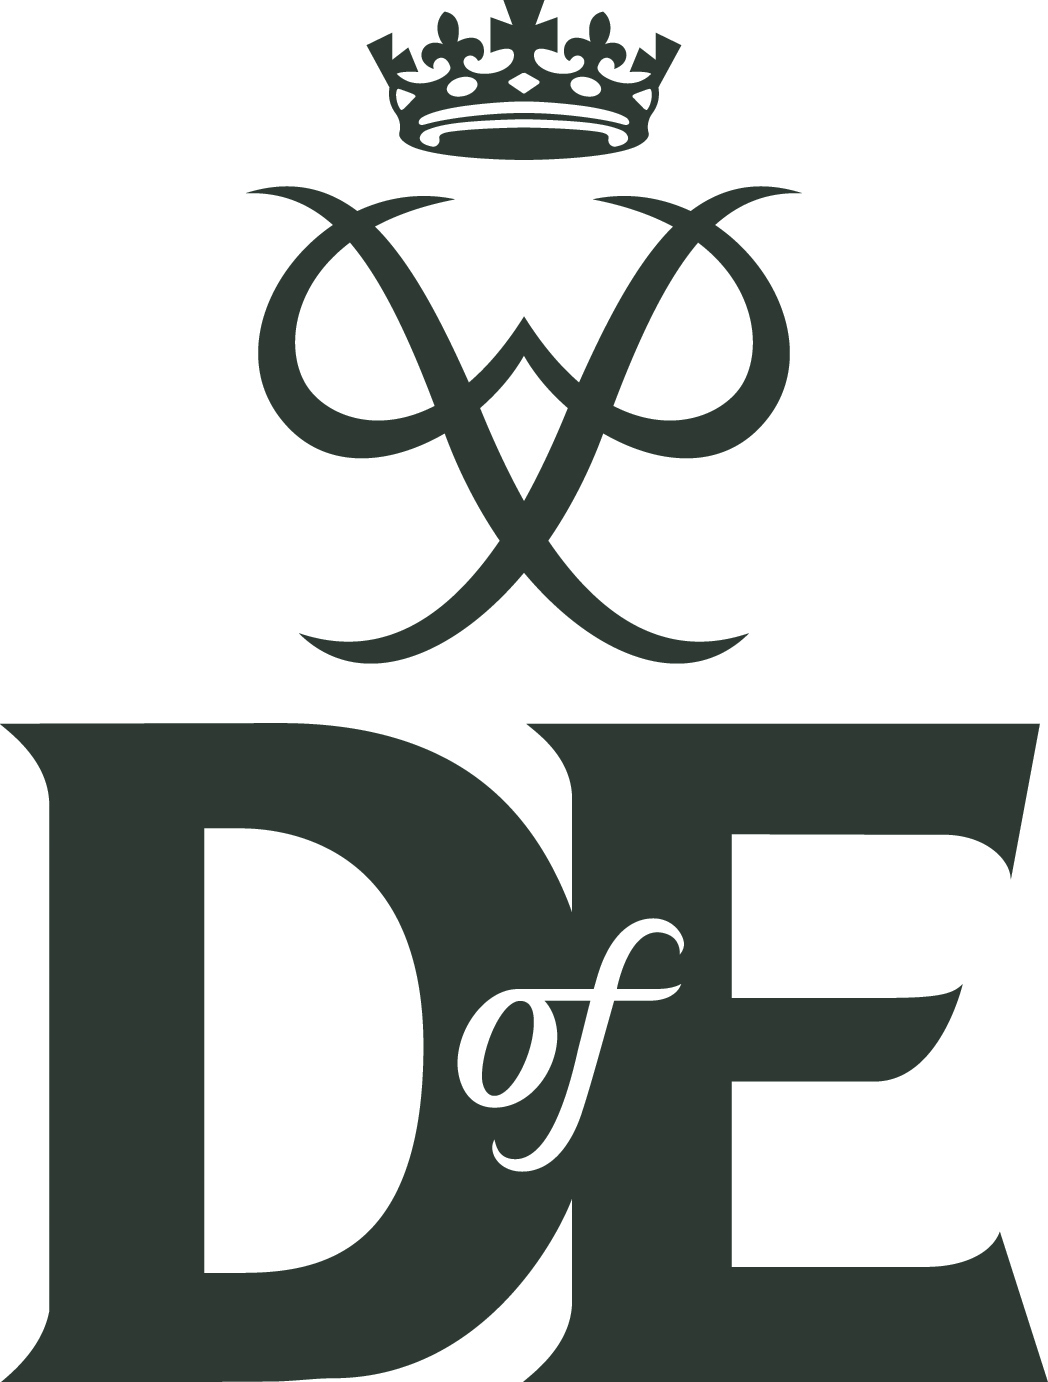 DofE-logo-gunmetal-no-words-RGB1.jpg